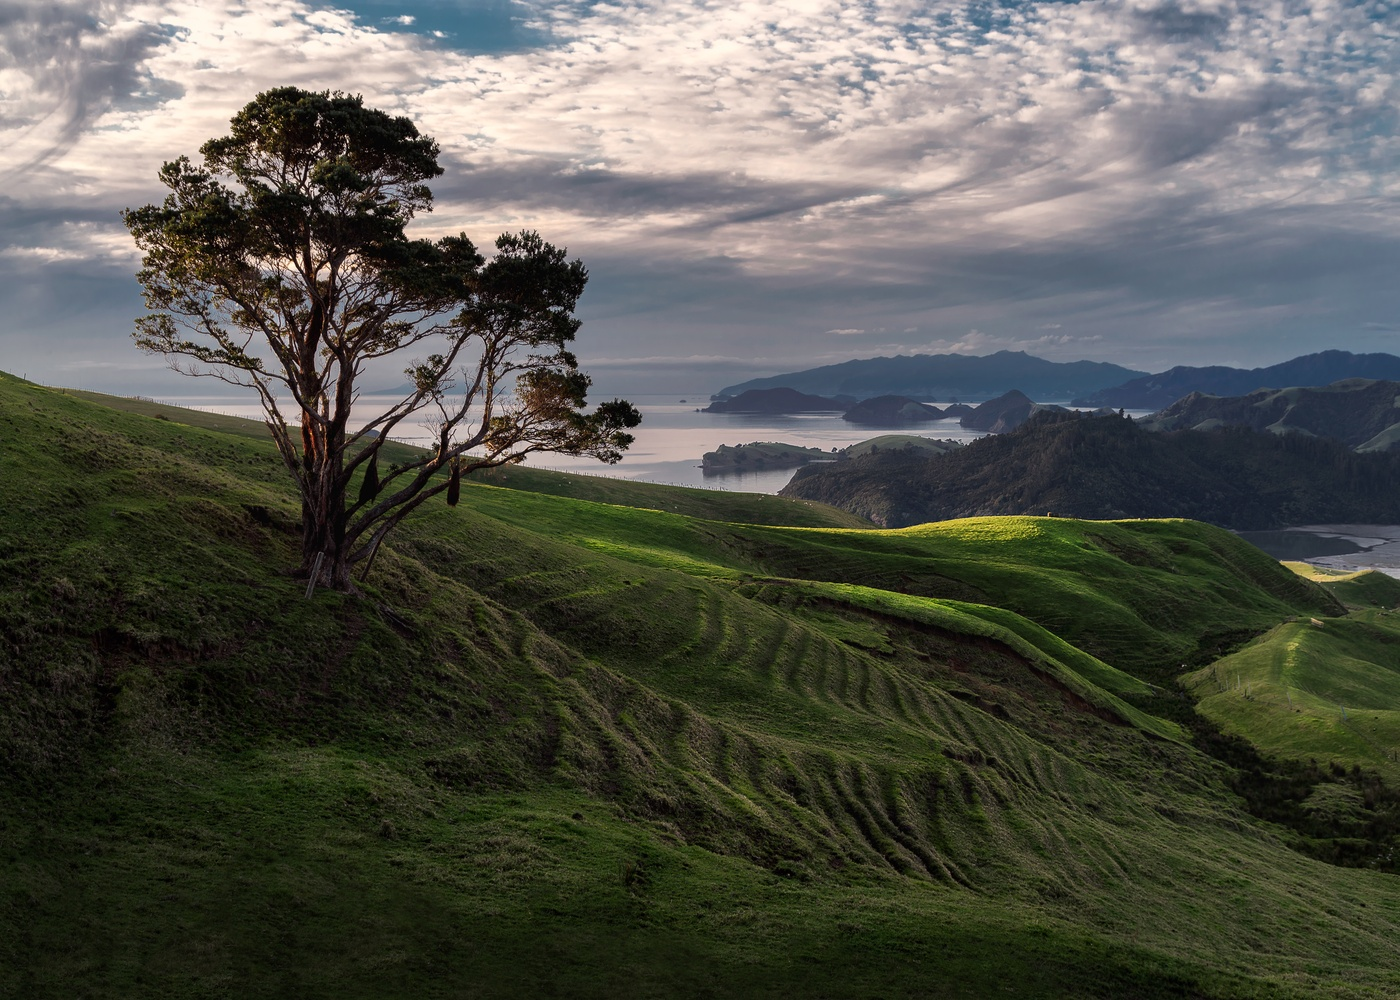 The Coromandel's Lone Tree by Ryan Hill